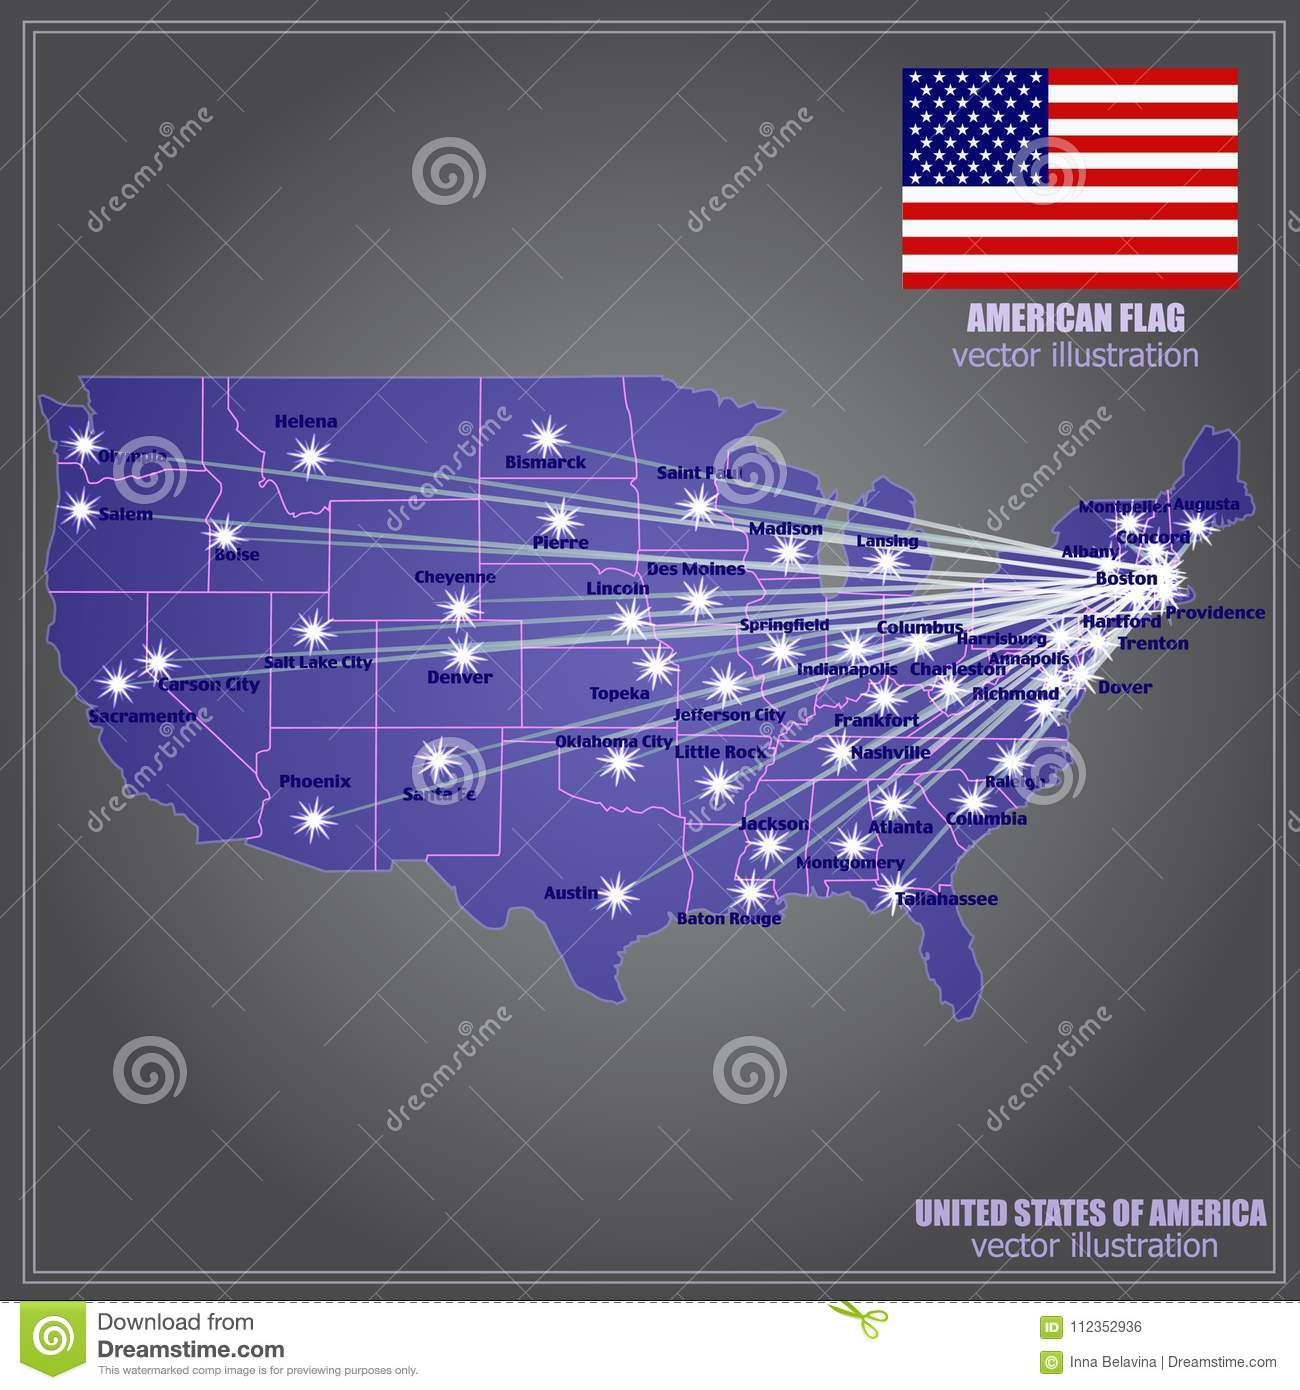 United States Of America Vector Map. Illustration. Stock Vector ...